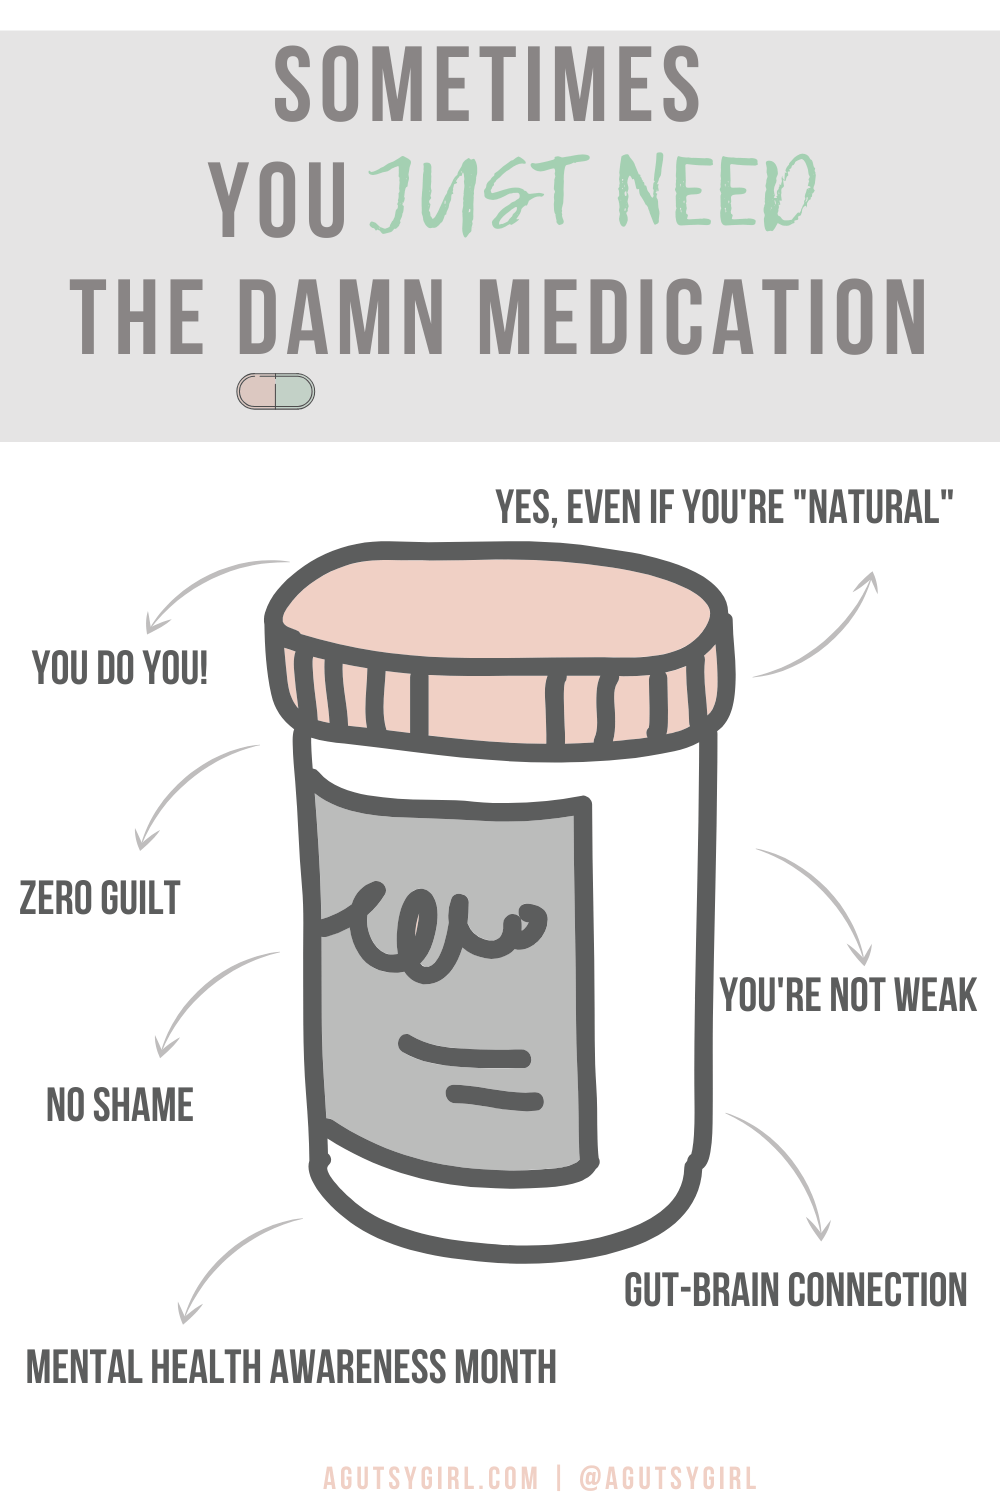 Sometimes You Just Need the Damn Medication agutsygirl.com #mentalhealth #mentalhealthawareness #guthealth